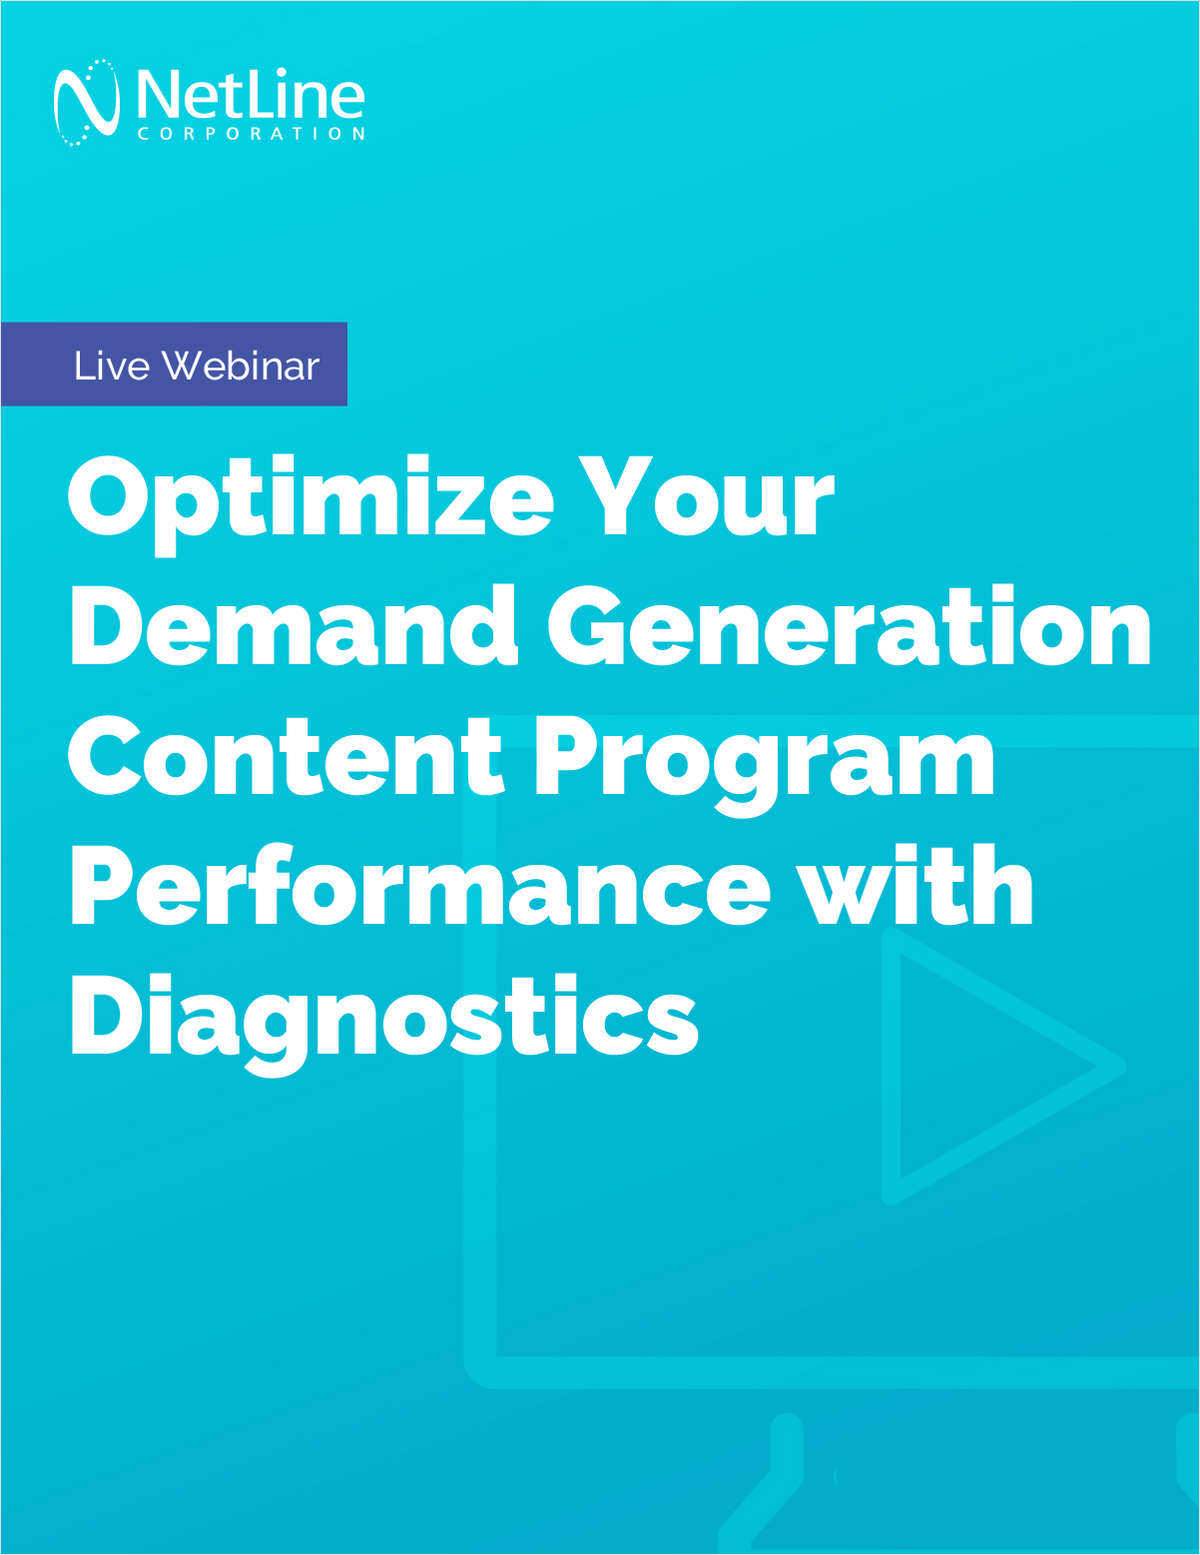 Webinar: How to Optimize Your Demand Generation Content Program Performance with Diagnostics